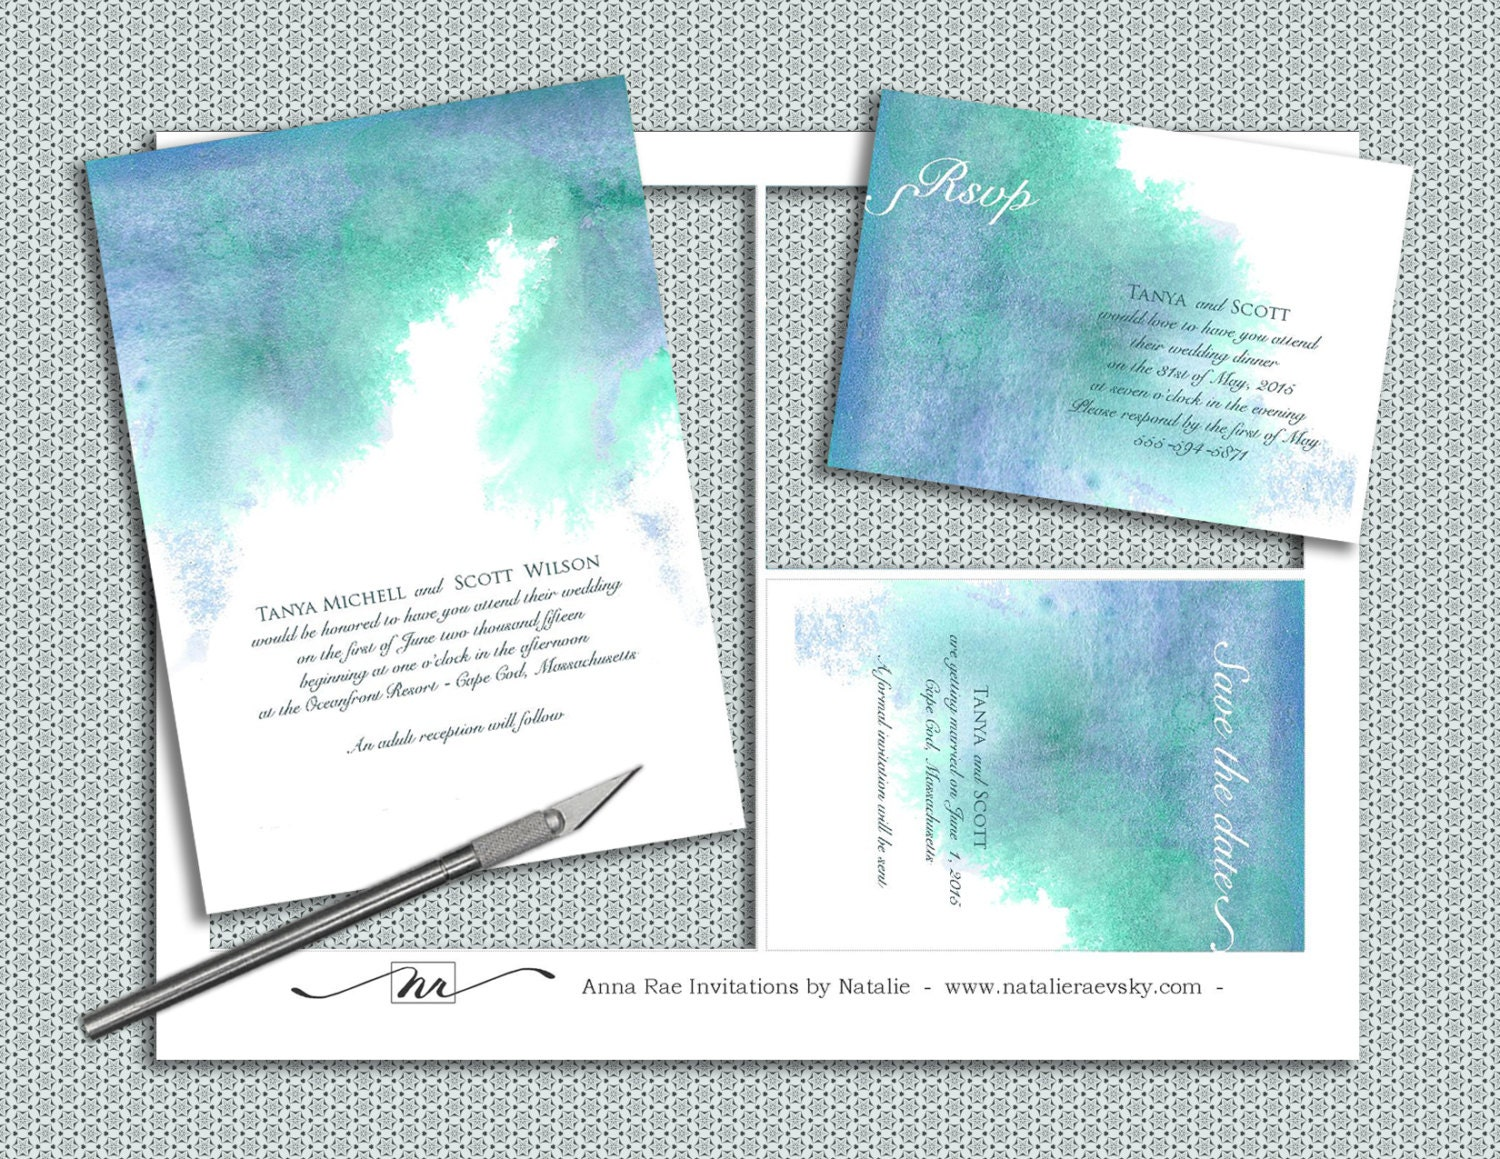 5X7 Invitation Paper with awesome invitations design